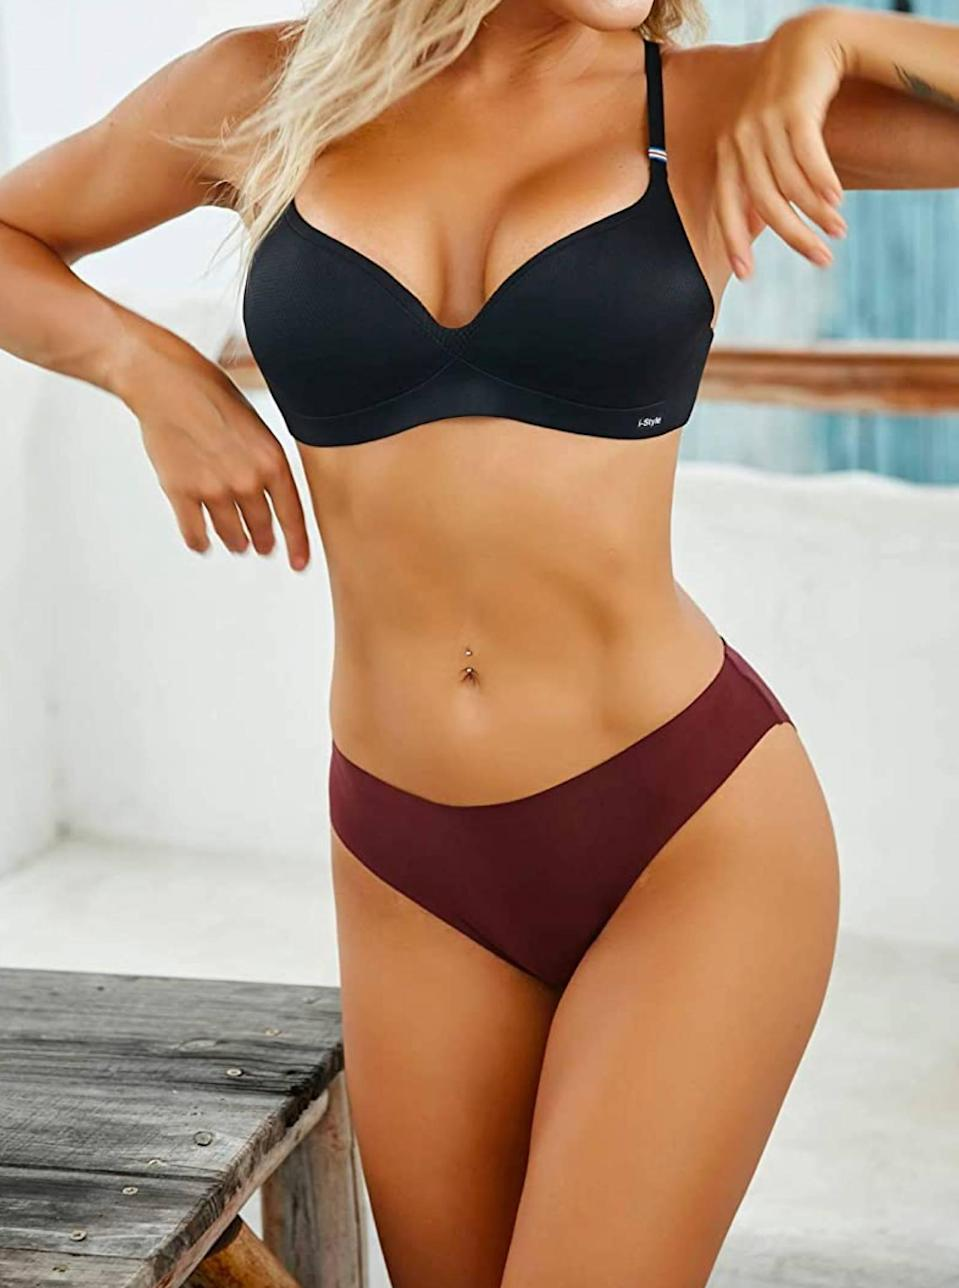 """At $3 a pop, there's no reason <em>not</em> to add this bulk pack of no-show underwear to cart. Oh, and if you're worried the price is too good to be true, one reviewer was so convinced by the quality of these seamless hipsters, <a href=""""https://cna.st/affiliate-link/Daa4E2BFDsDhwTUfu6Bjc2WYjtxy6KYvnV4DCHEFvYvQ7gpzrXyDFoPLY7rB7yefzFCtfx4?cid=60bfa43c27ca633a4e3a2368"""" rel=""""nofollow noopener"""" target=""""_blank"""" data-ylk=""""slk:she said"""" class=""""link rapid-noclick-resp"""">she said</a> she """"bought three sets and threw all her old ones away."""" $20, Amazon. <a href=""""https://www.amazon.com/Seamless-Hipster-Underwear-Invisibles-Underwears/dp/B08LKR8HMT/ref="""" rel=""""nofollow noopener"""" target=""""_blank"""" data-ylk=""""slk:Get it now!"""" class=""""link rapid-noclick-resp"""">Get it now!</a>"""